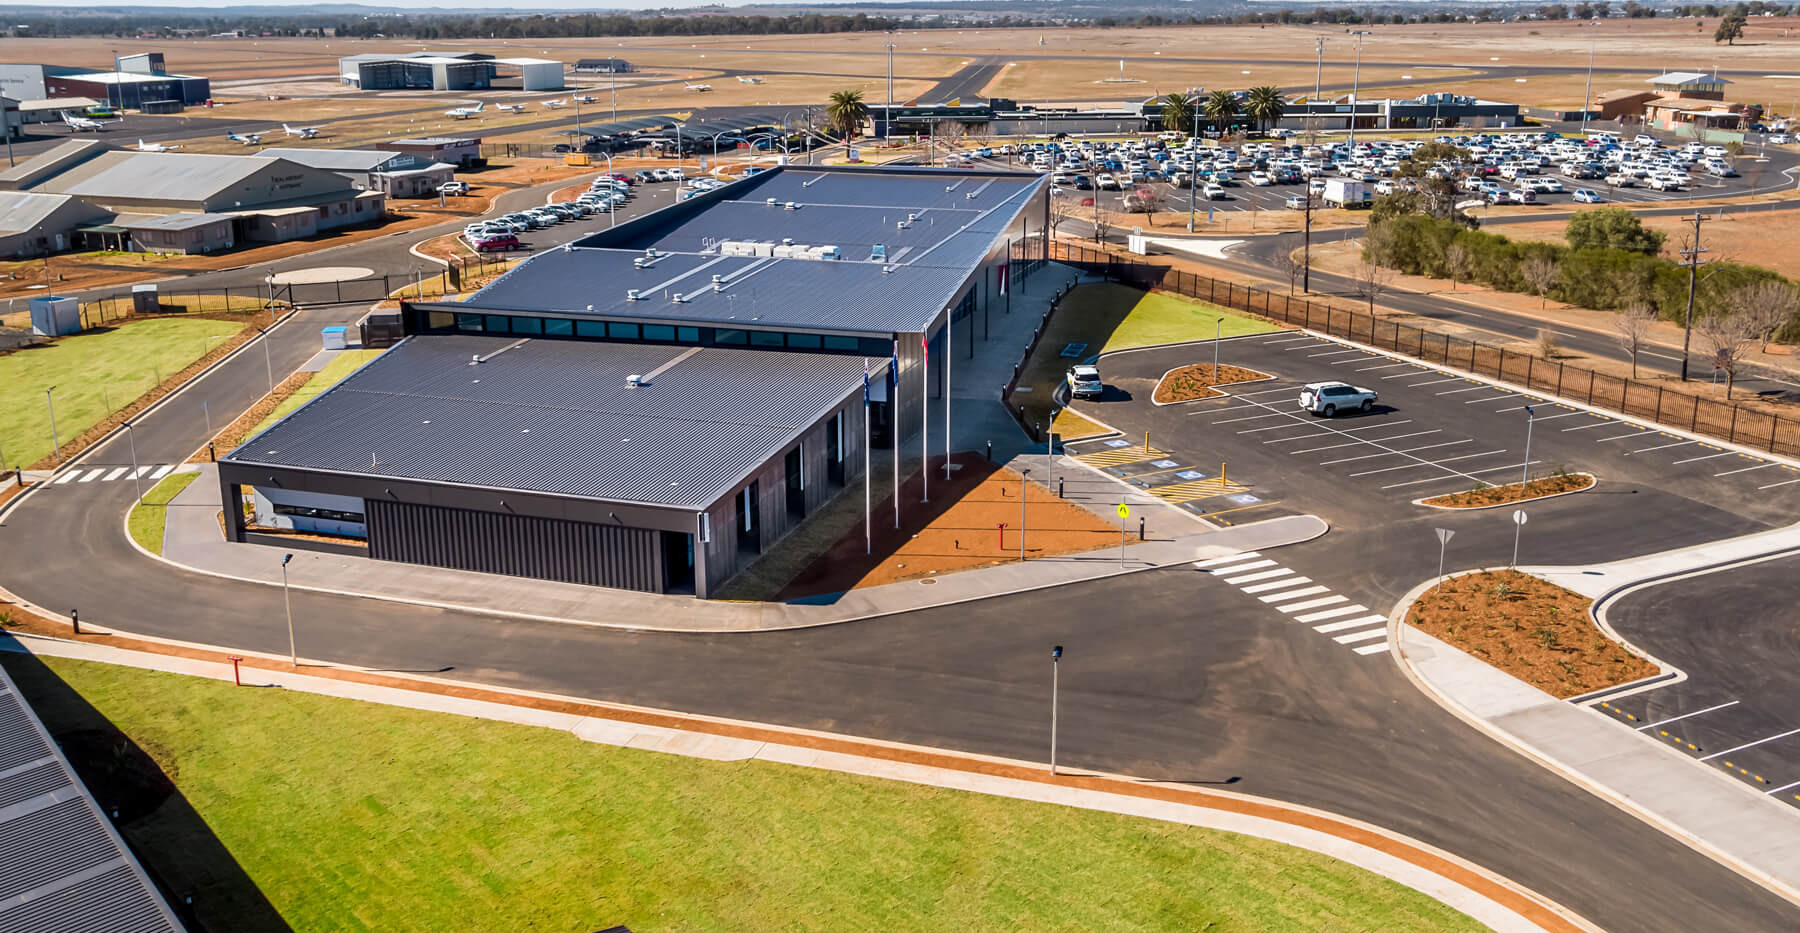 NSW RFS - Commercial Architecture